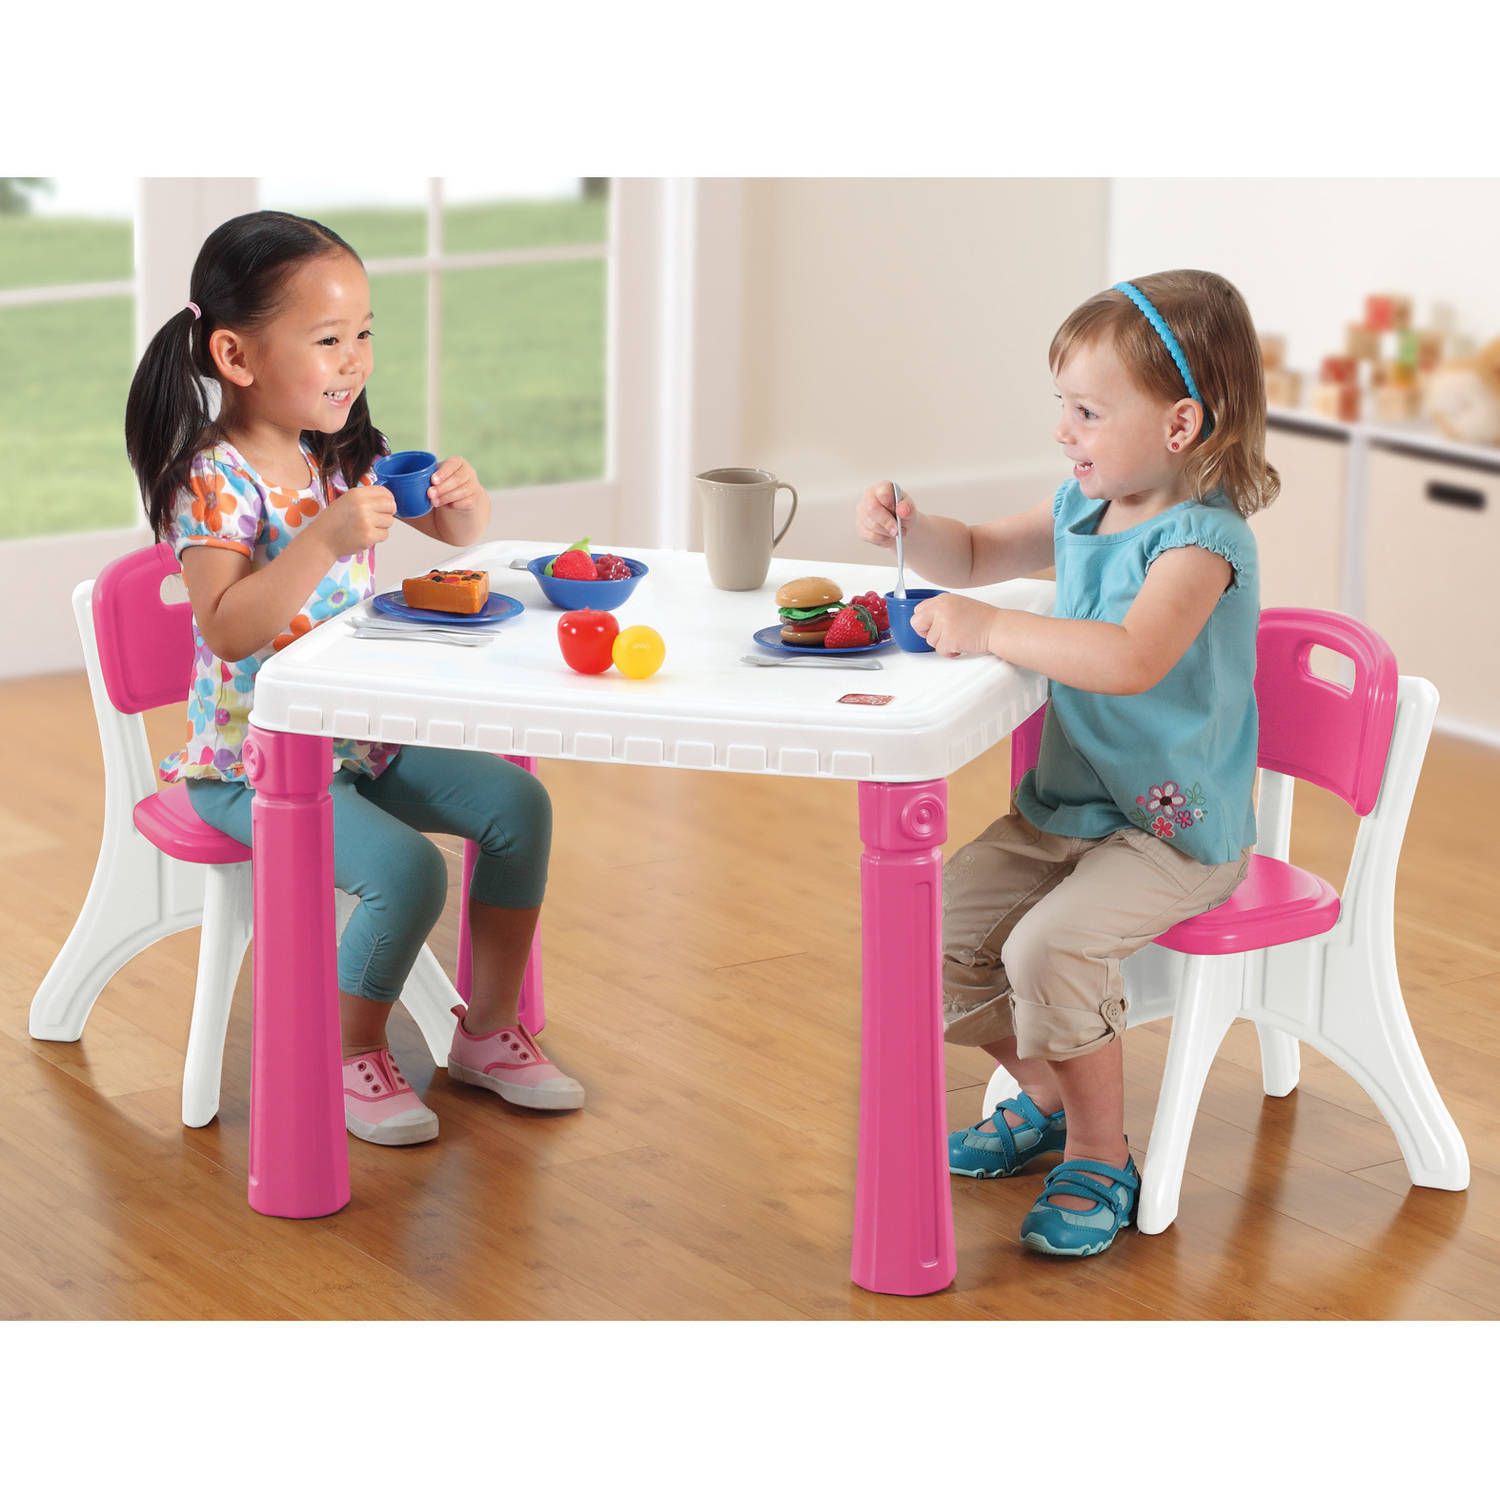 Step2 Table and Chairs Set, Pink